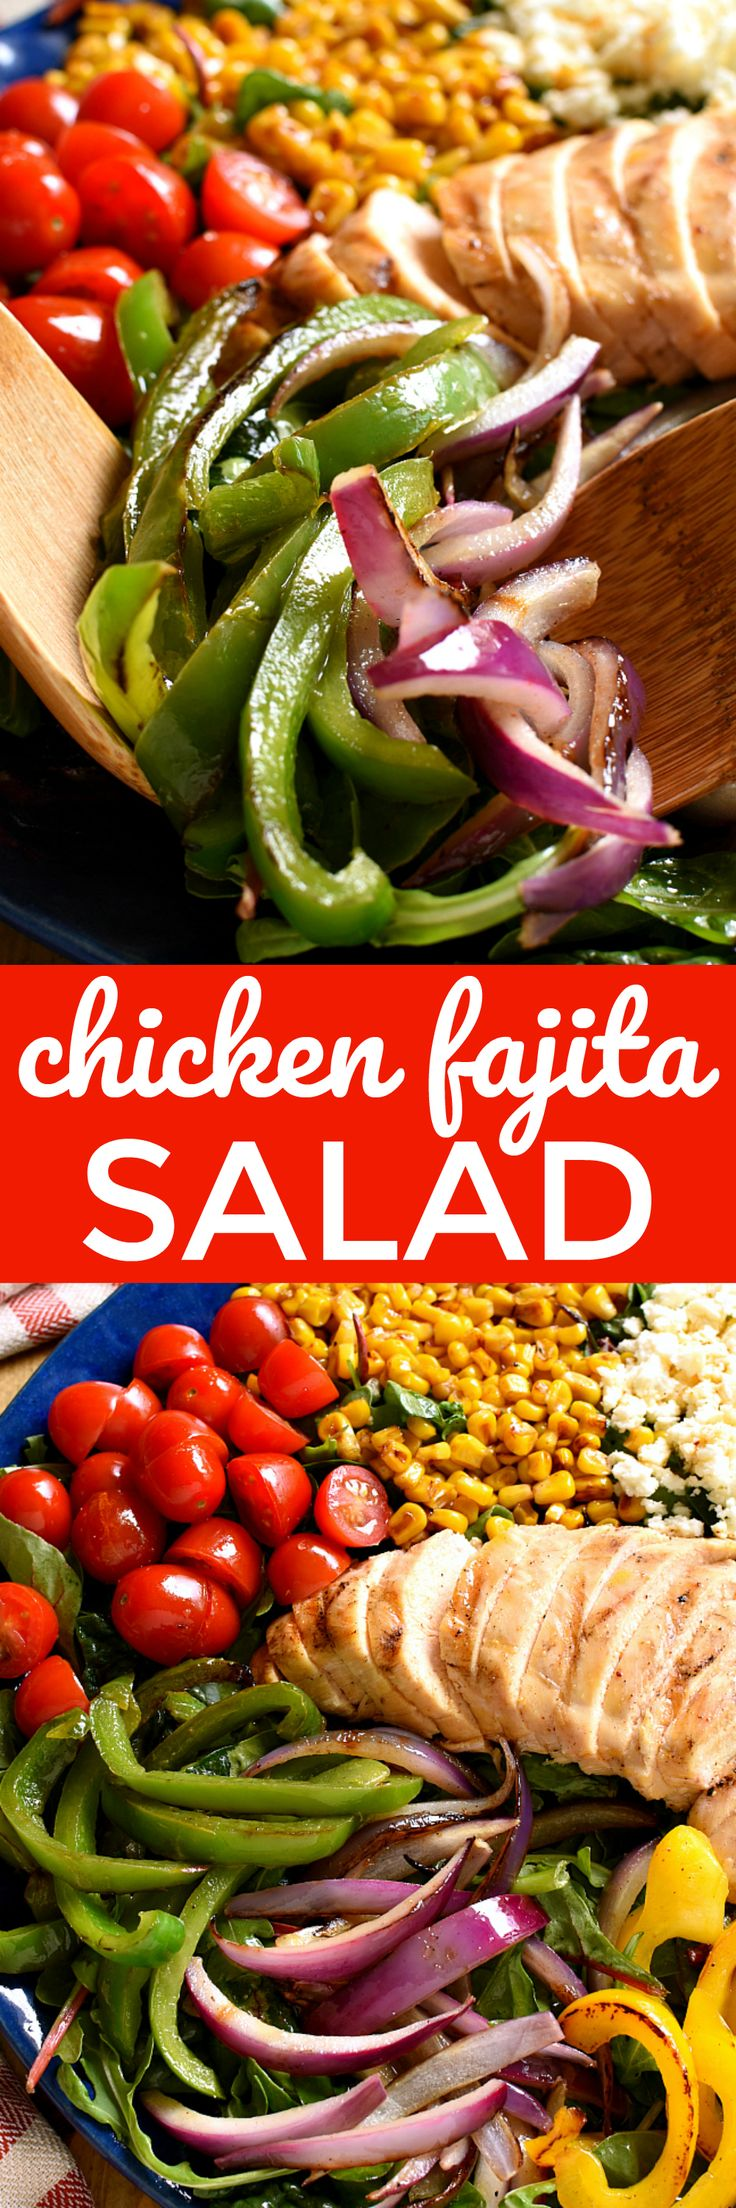 If you love Chicken Fajitas, you'll LOVE this Chicken Fajita Salad! Loaded with grilled peppers, onions, chicken, corn, tomatoes, avocado, and queso fresco....this salad has ALL the best flavors, and  (Chicken Fajitas)